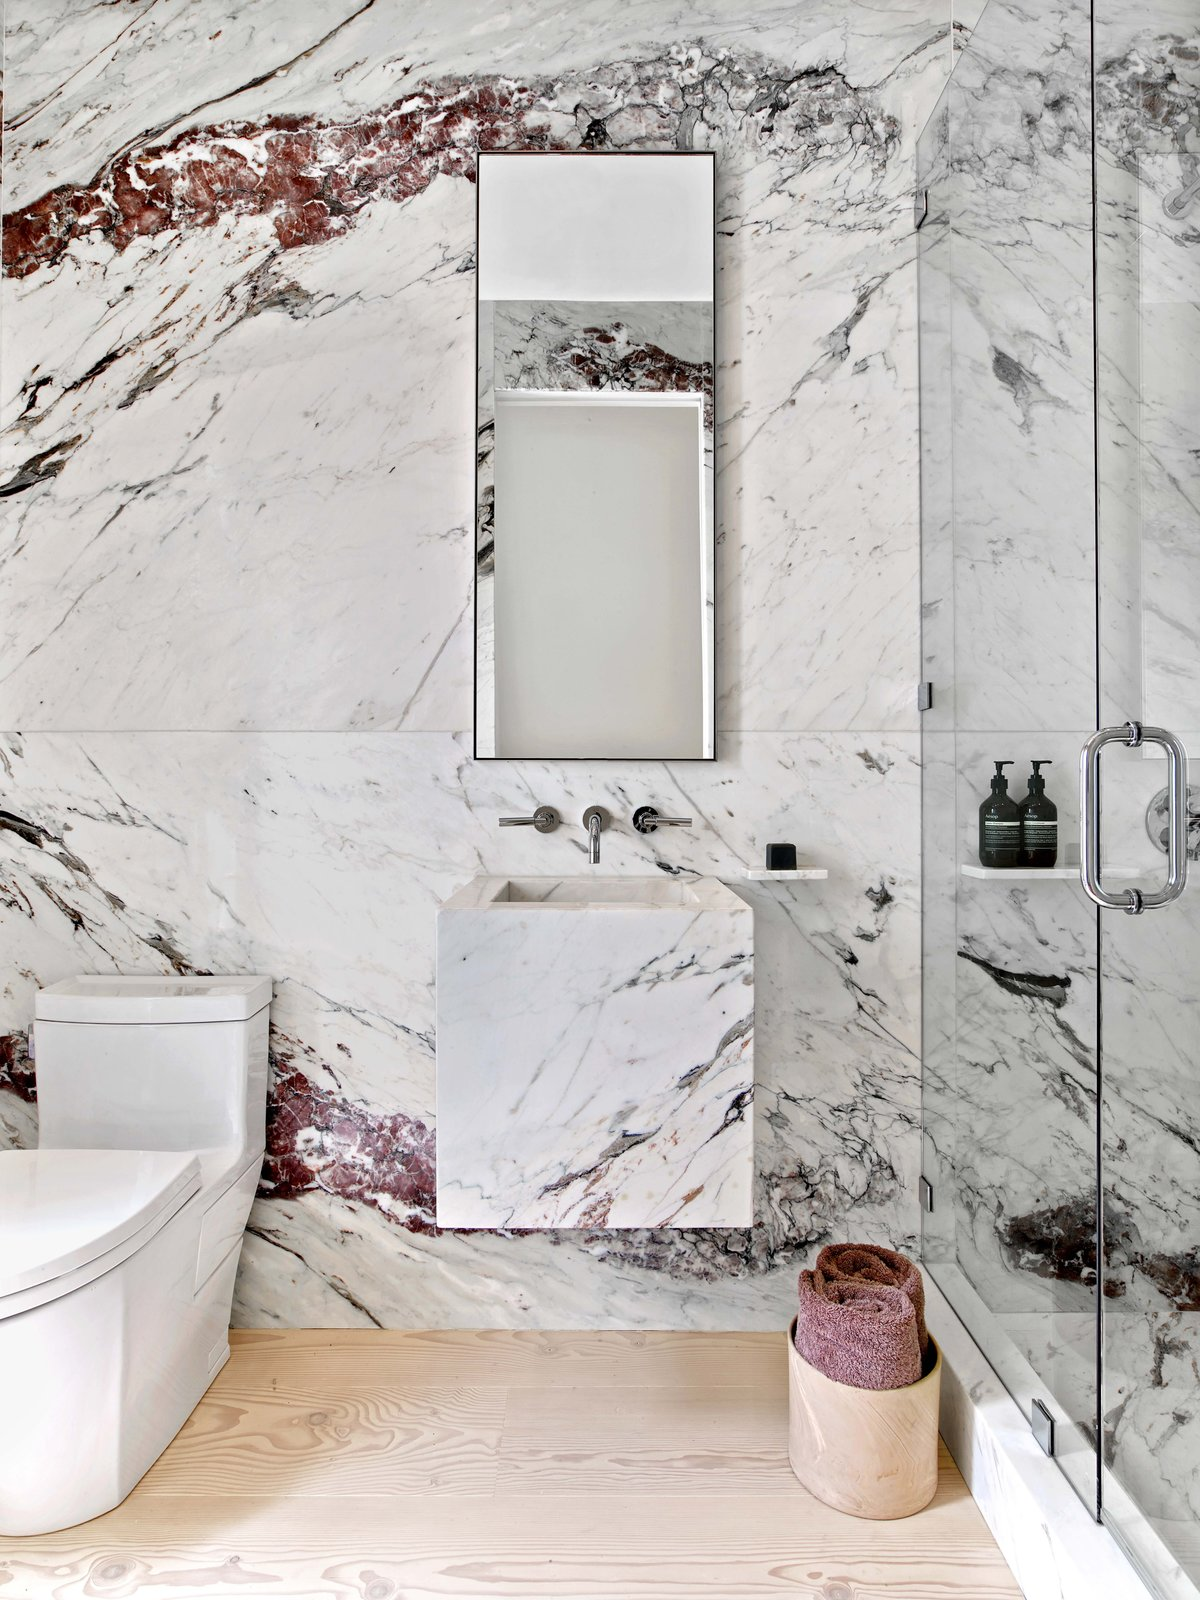 Tagged: Bath Room, Marble Floor, Wall Mount Sink, Enclosed Shower, Corner Shower, Marble Wall, and Two Piece Toilet.  Glen Park Residence by CCS Architecture